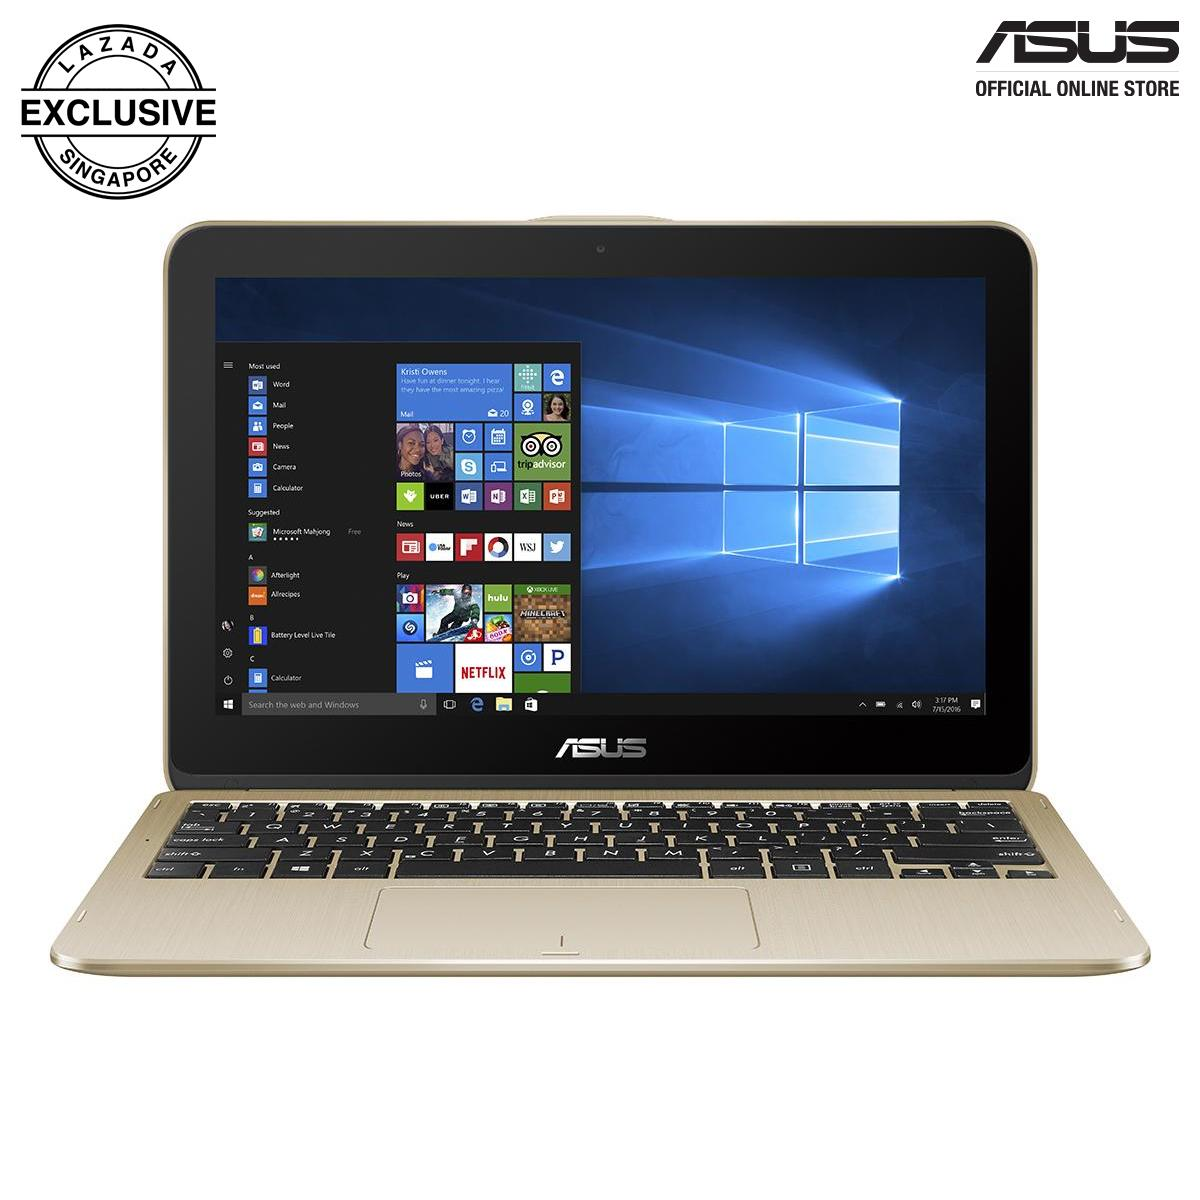 ASUS Transformer Book TP203NAH-BP049T (Shimmer Gold)